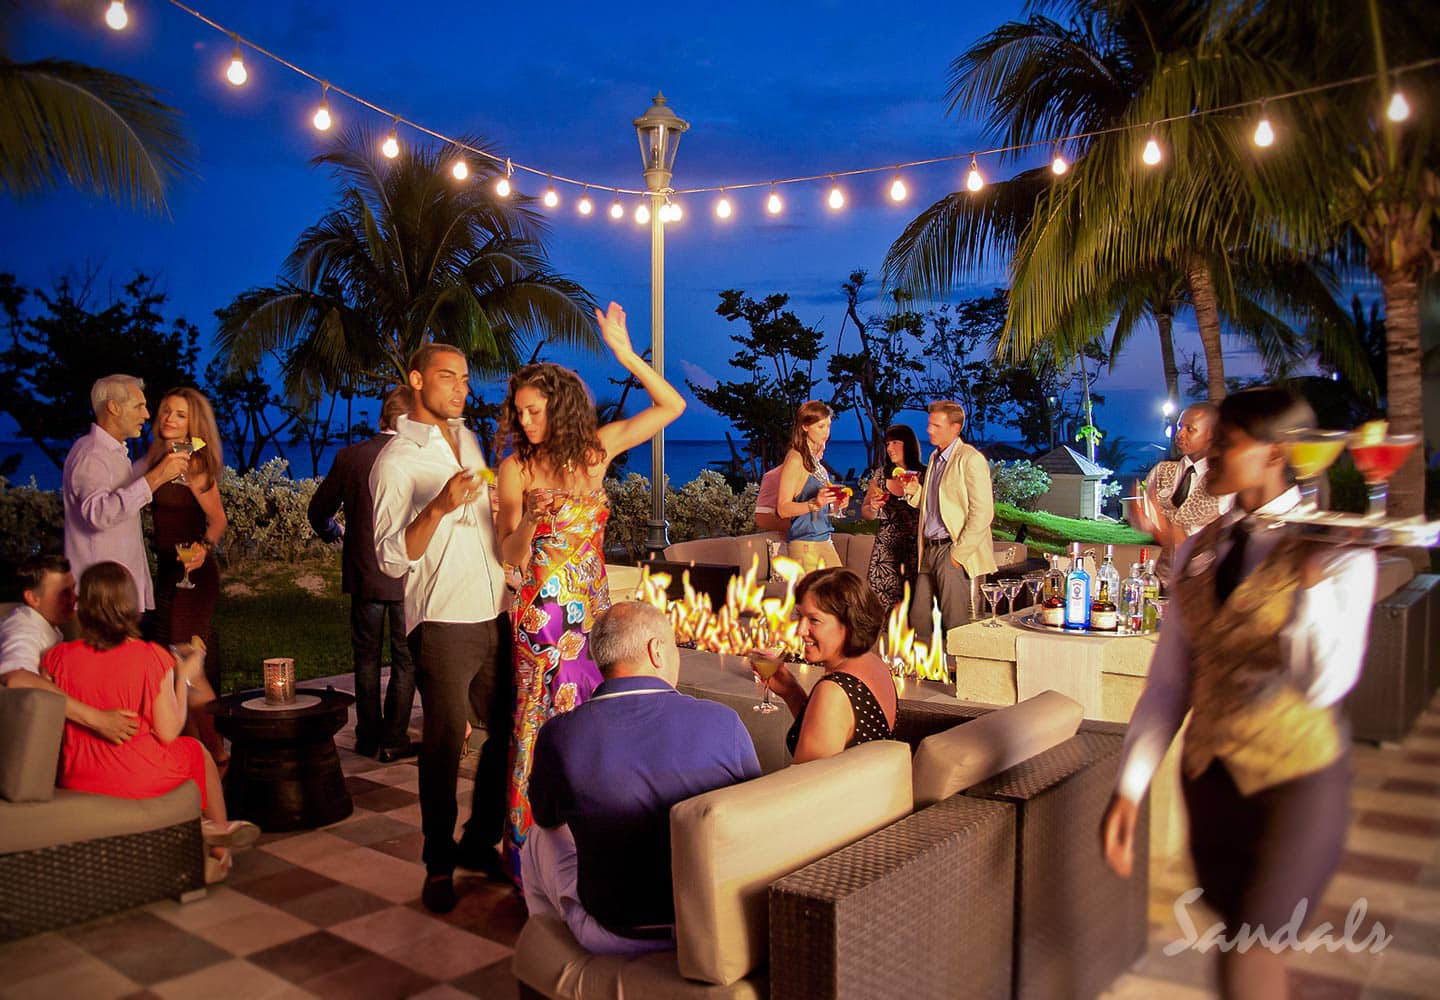 people dancing, drinking, and having a good time, entertainment at Sandals Whitehouse, now South Coast, in Jamaica, vacation can be booked with Southern Travel Agency Augusta, GA